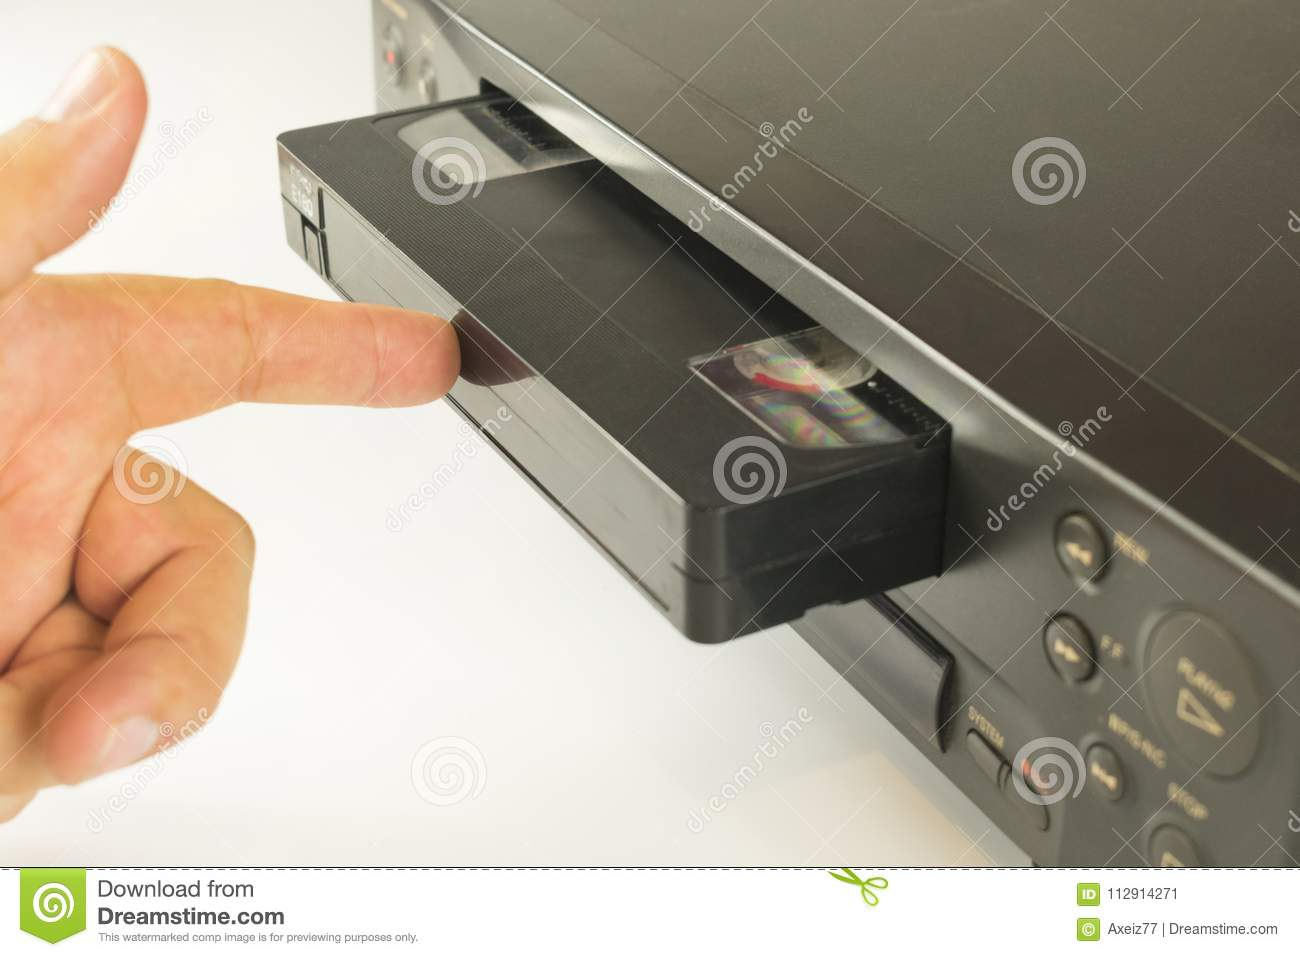 Finger Pushing A Video Cassette Into The Inside Of VCR For Viewing Recordings On White Background